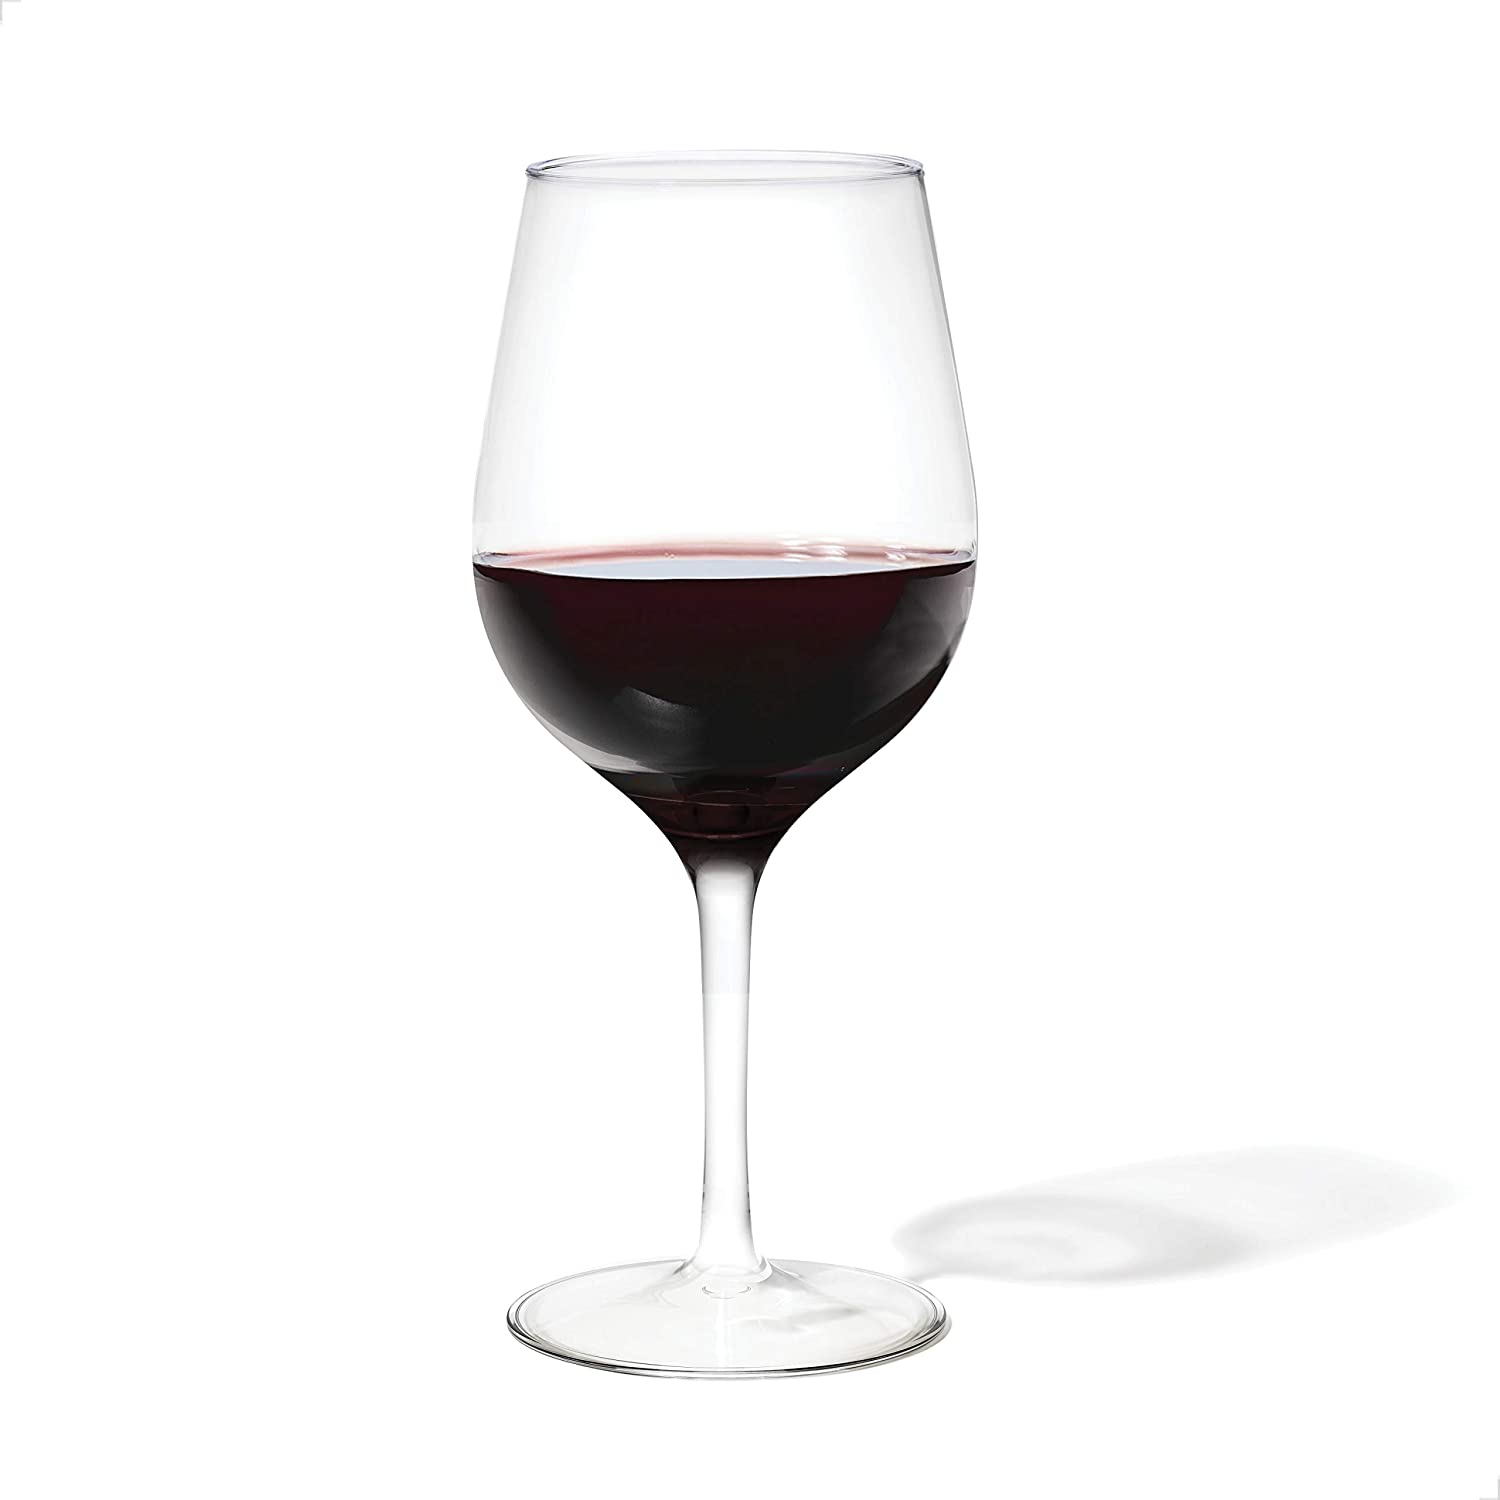 TOSSWARE 16oz Wine SET OF 4, Tritan Dishwasher Safe & Heat Resistant Unbreakable Plastic Cocktail Glasses